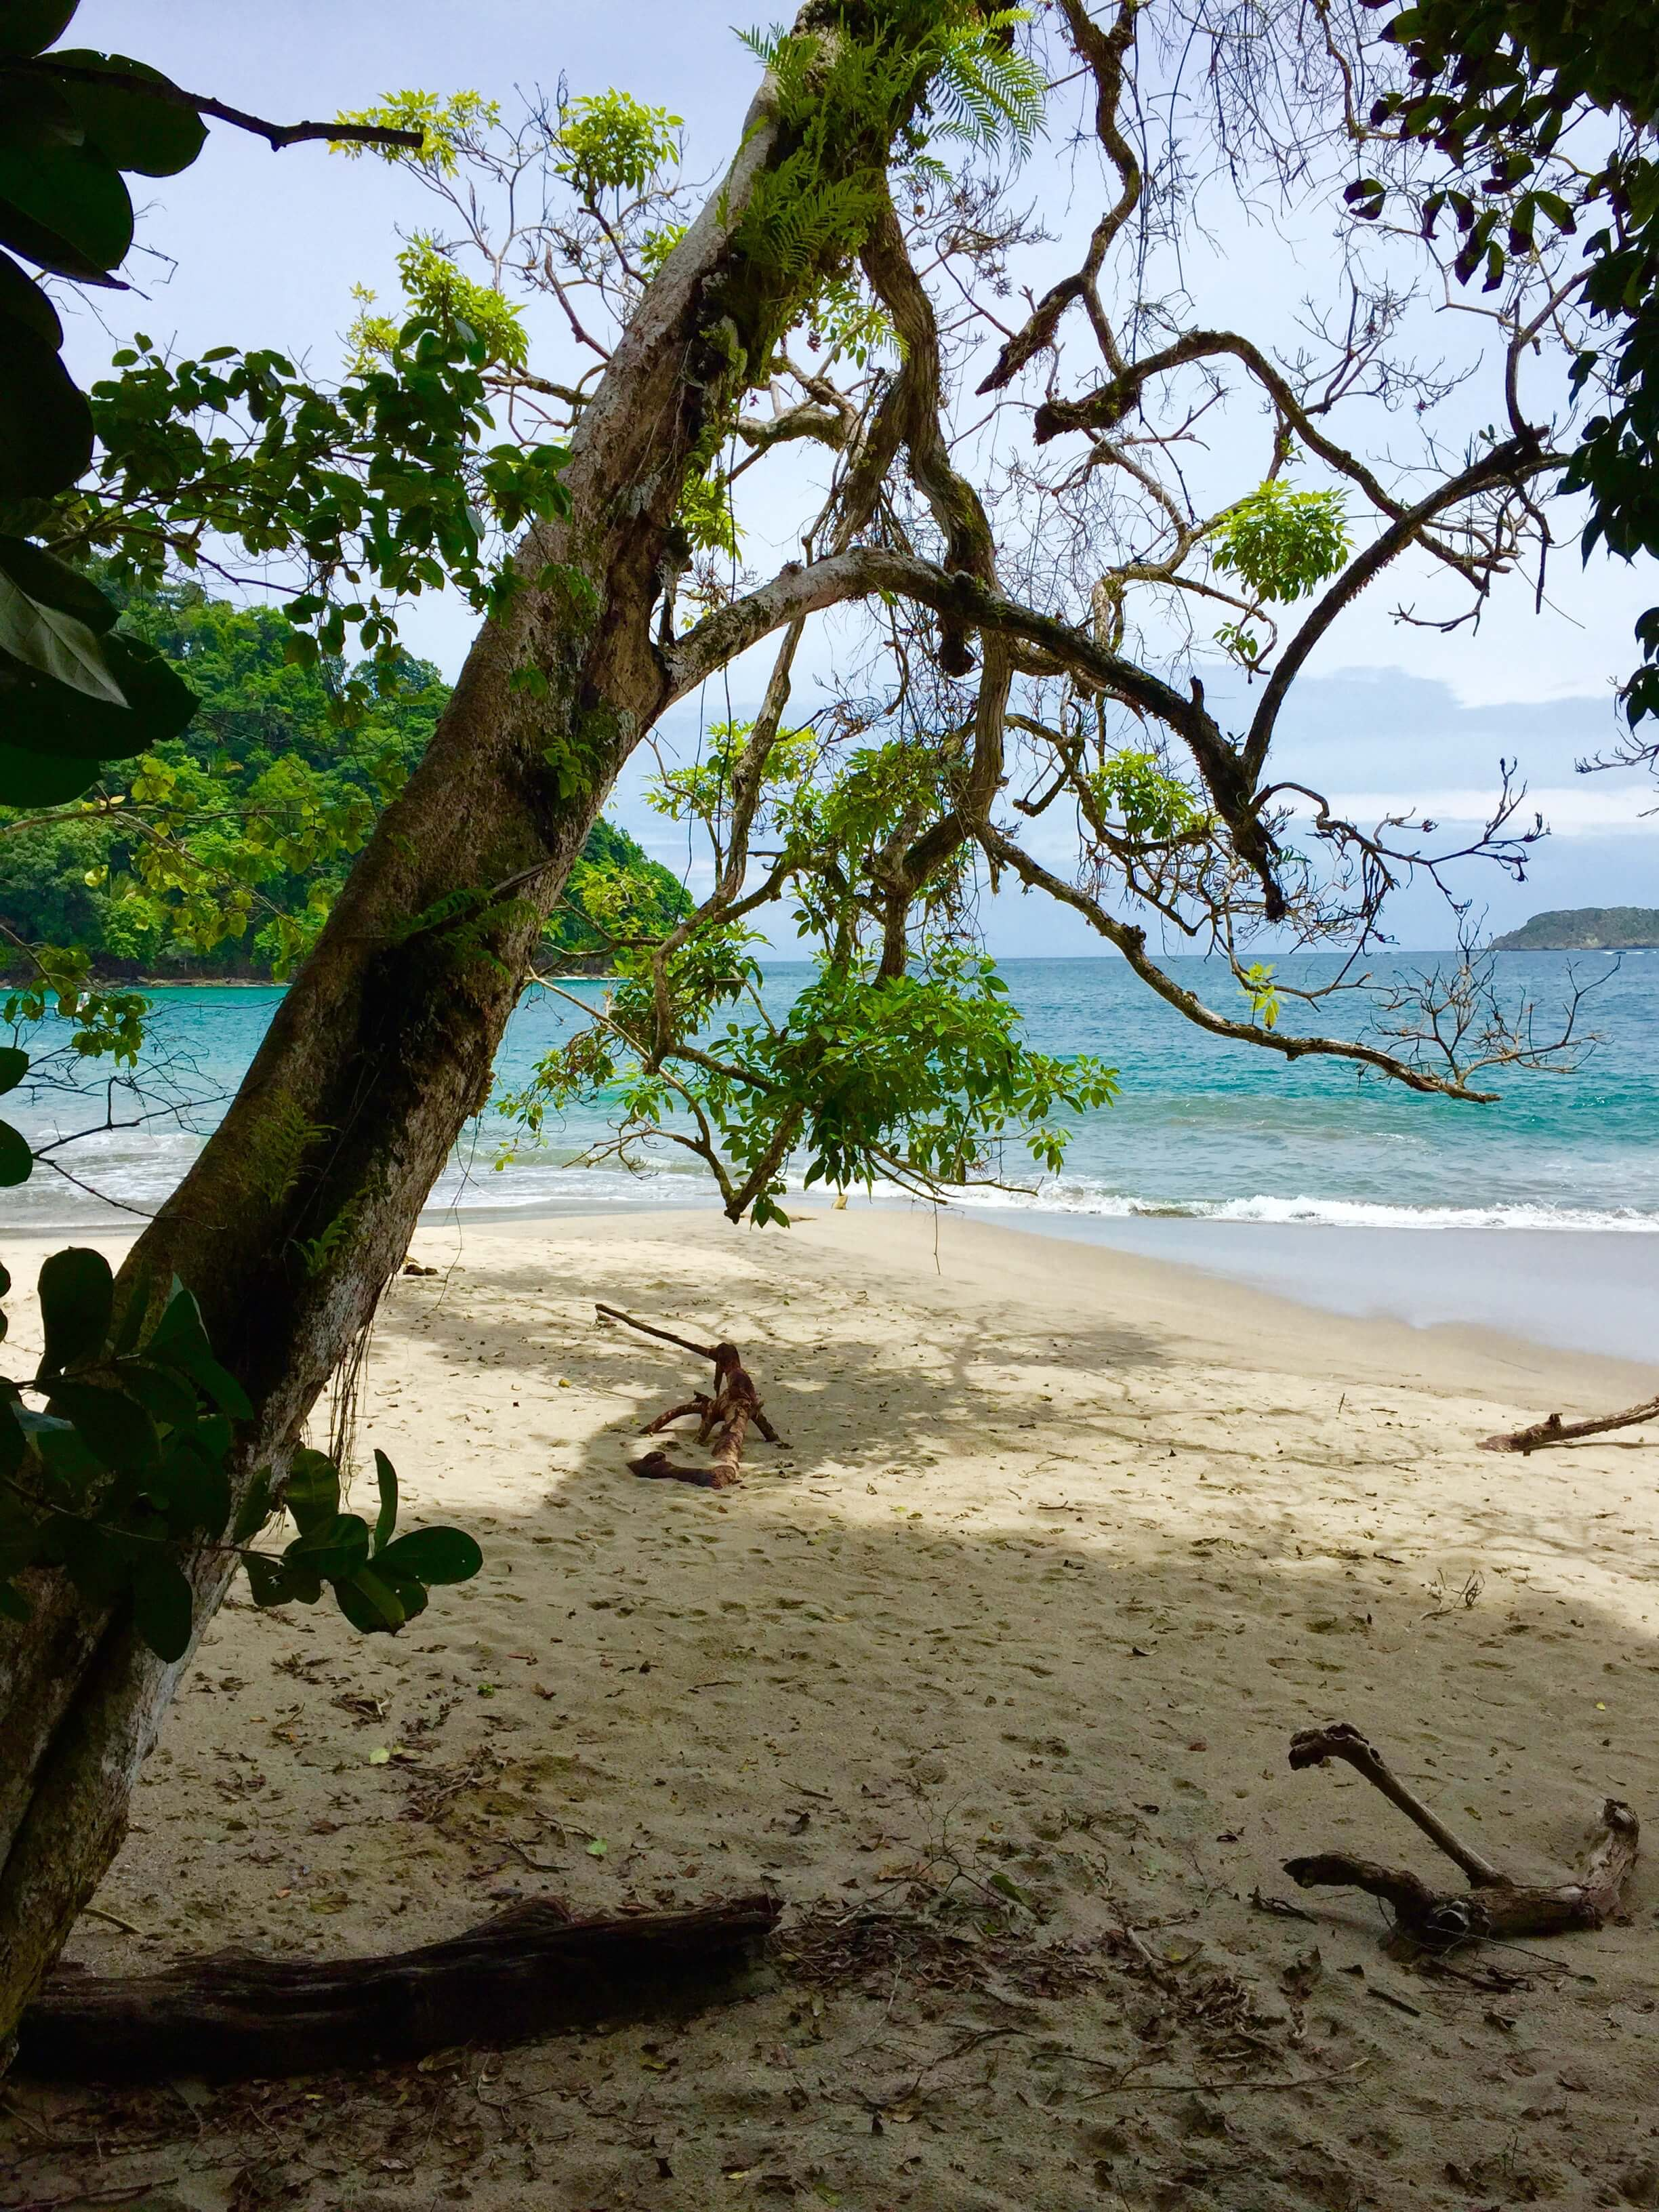 blog-costa-rica-9-days-manuel-antonio-national-park-beach